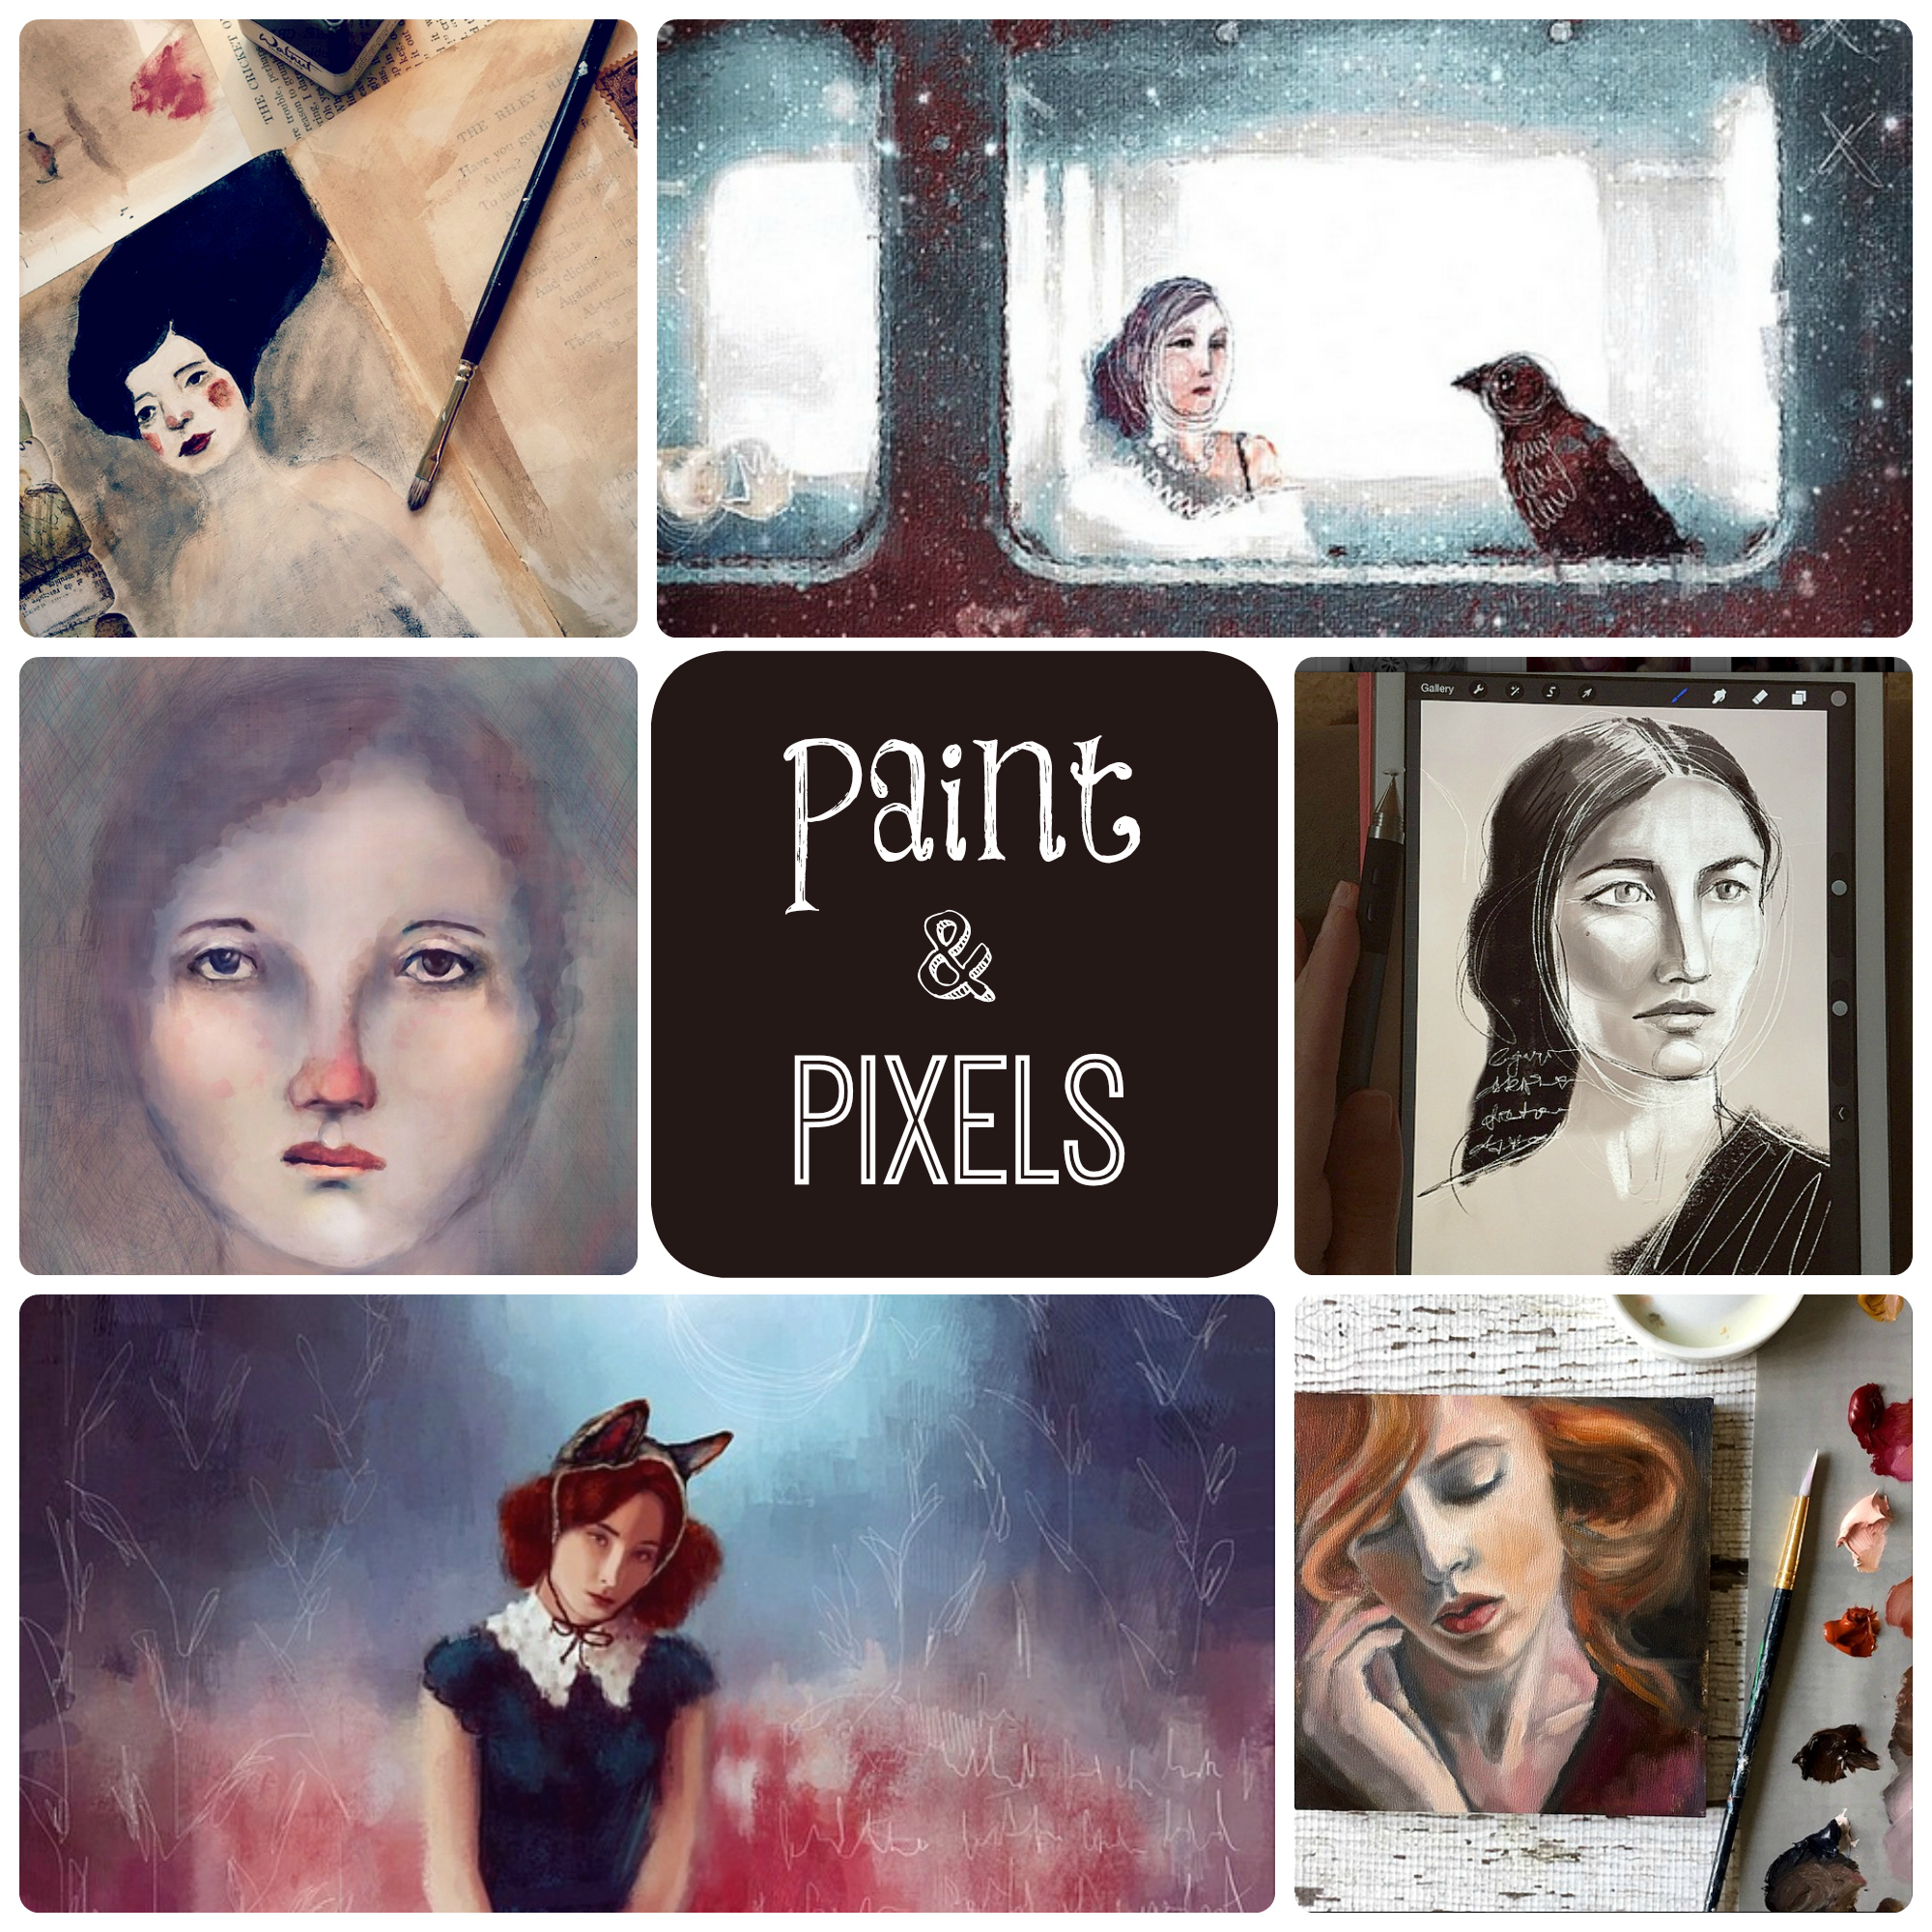 Paint & Pixels Promo Collage with text